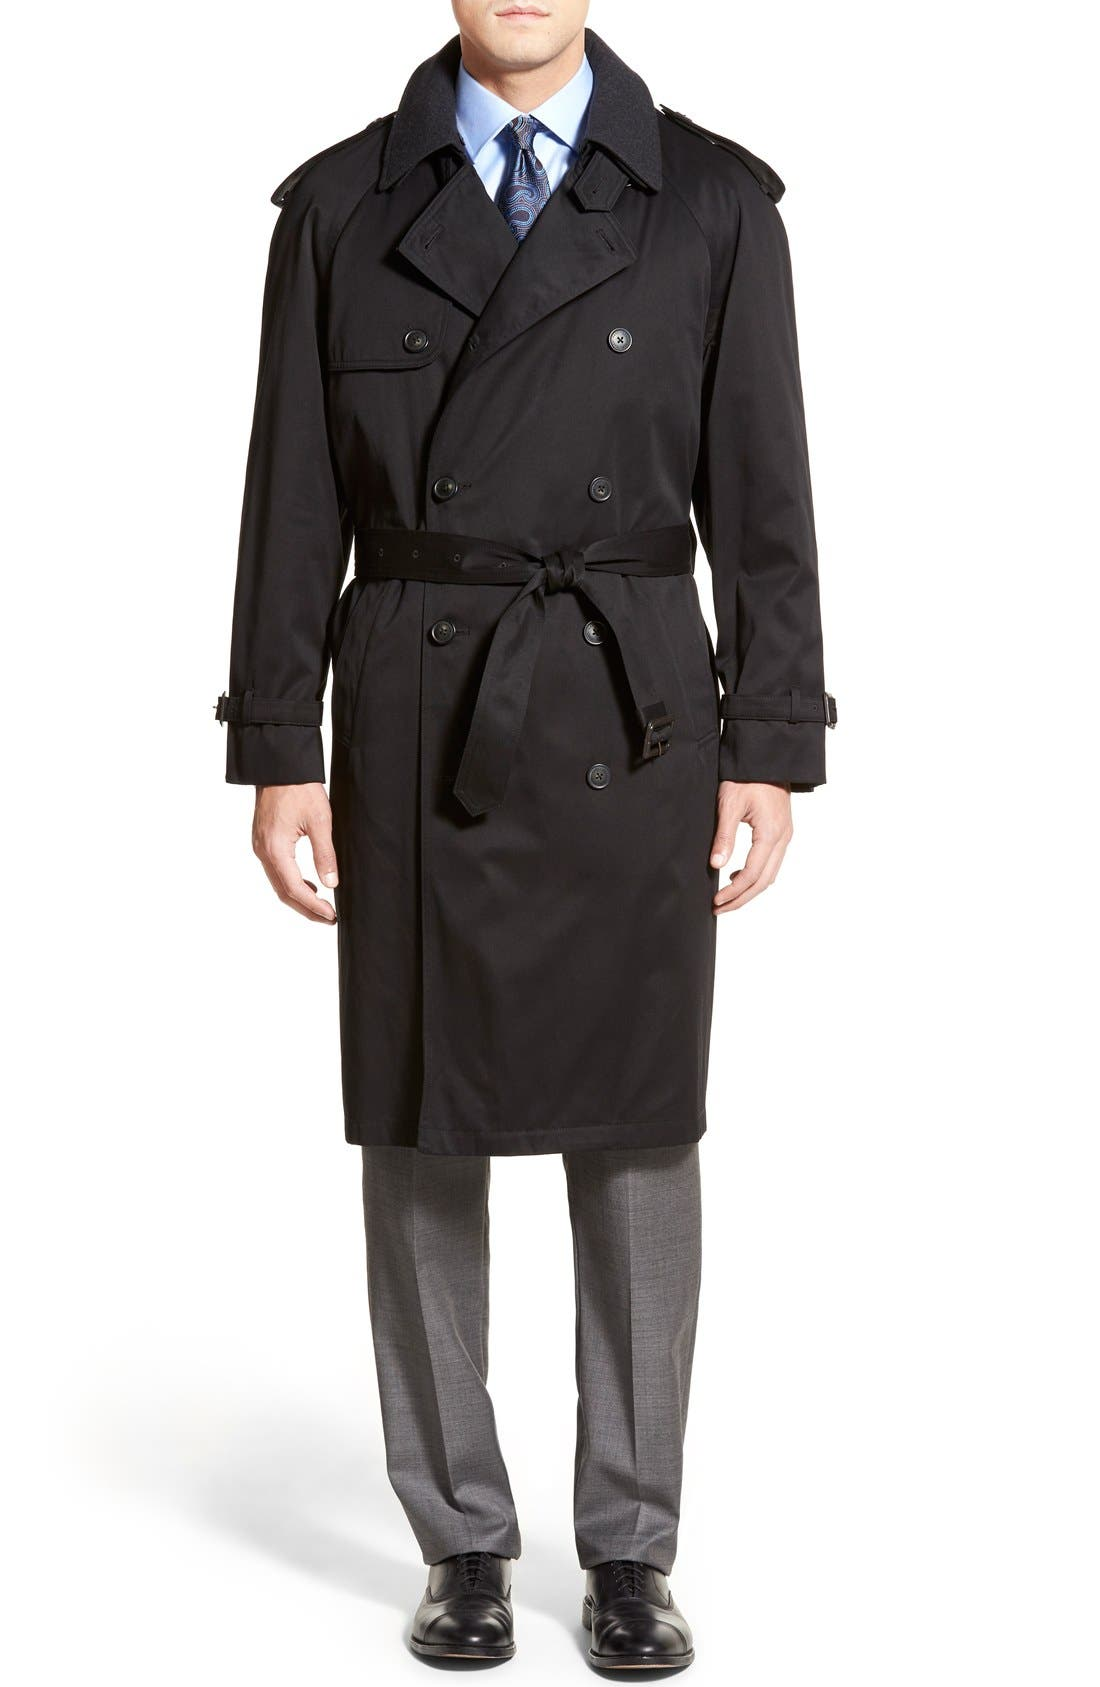 Barrington Classic Fit Cotton Blend Trench Coat,                             Main thumbnail 1, color,                             Black